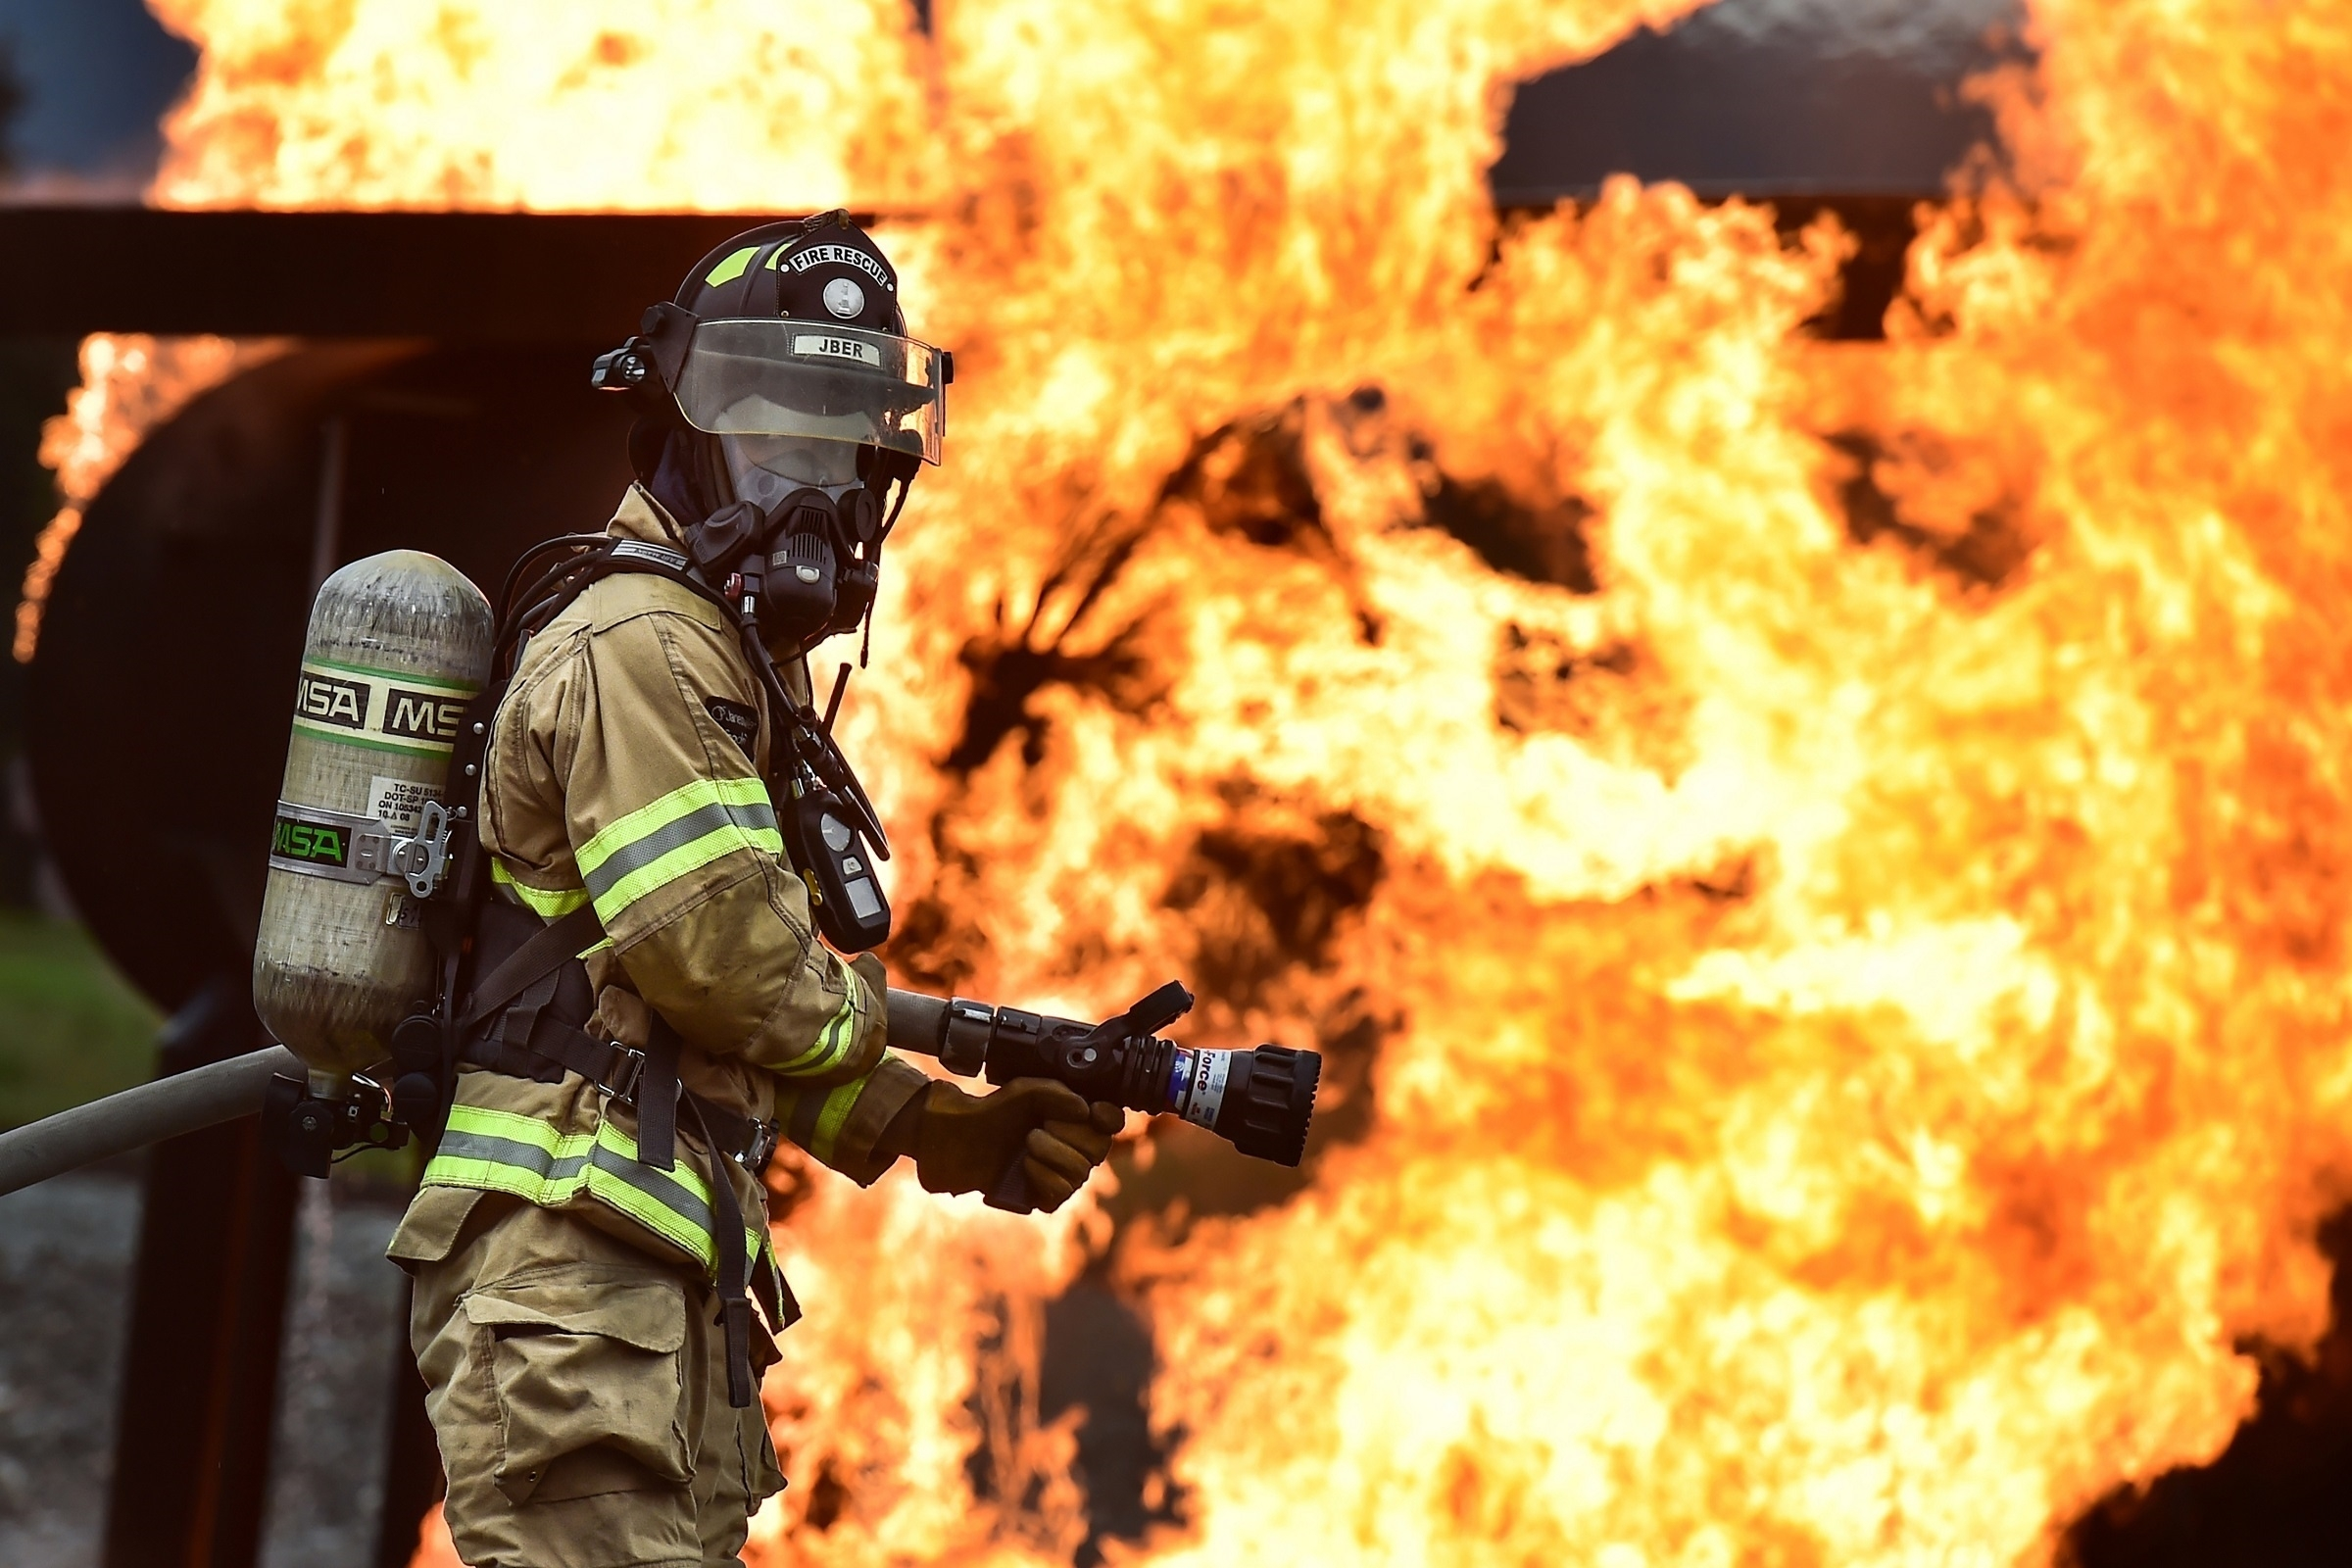 24 firefighter hd wallpapers   background images - wallpaper abyss